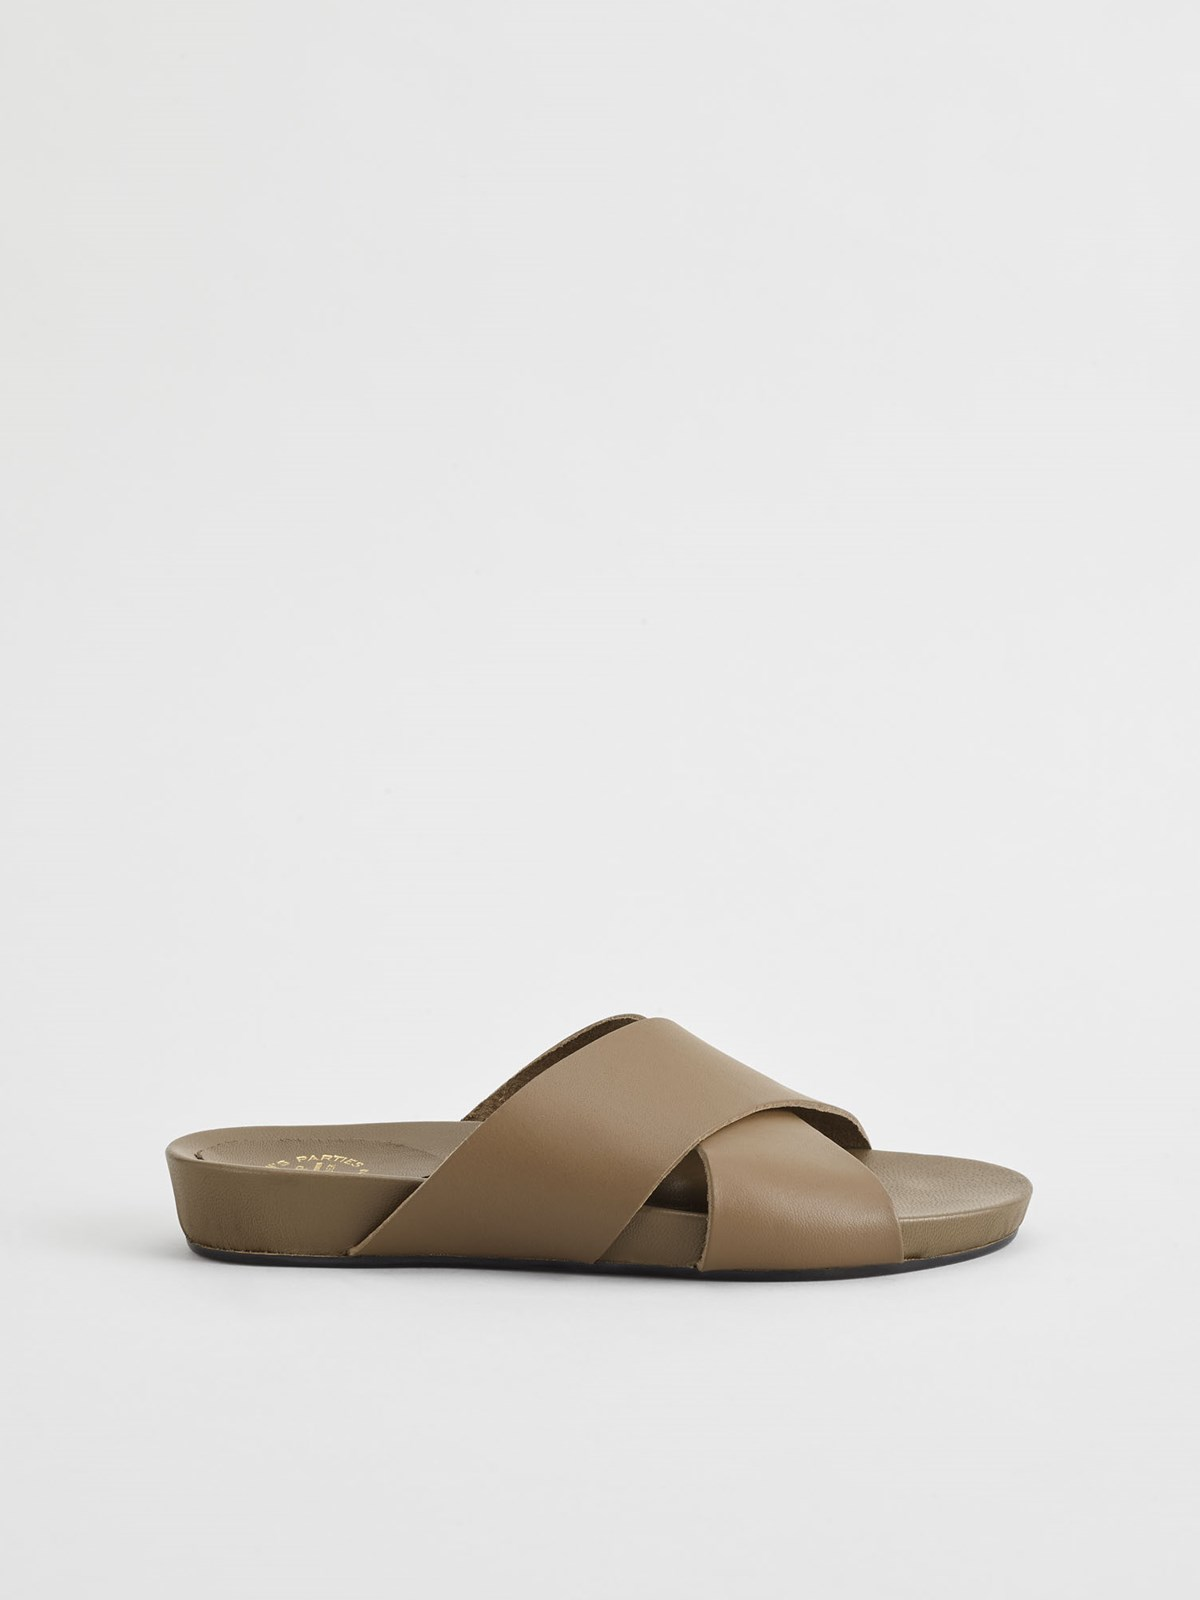 Doris Khaki Brown Everyday Sandals